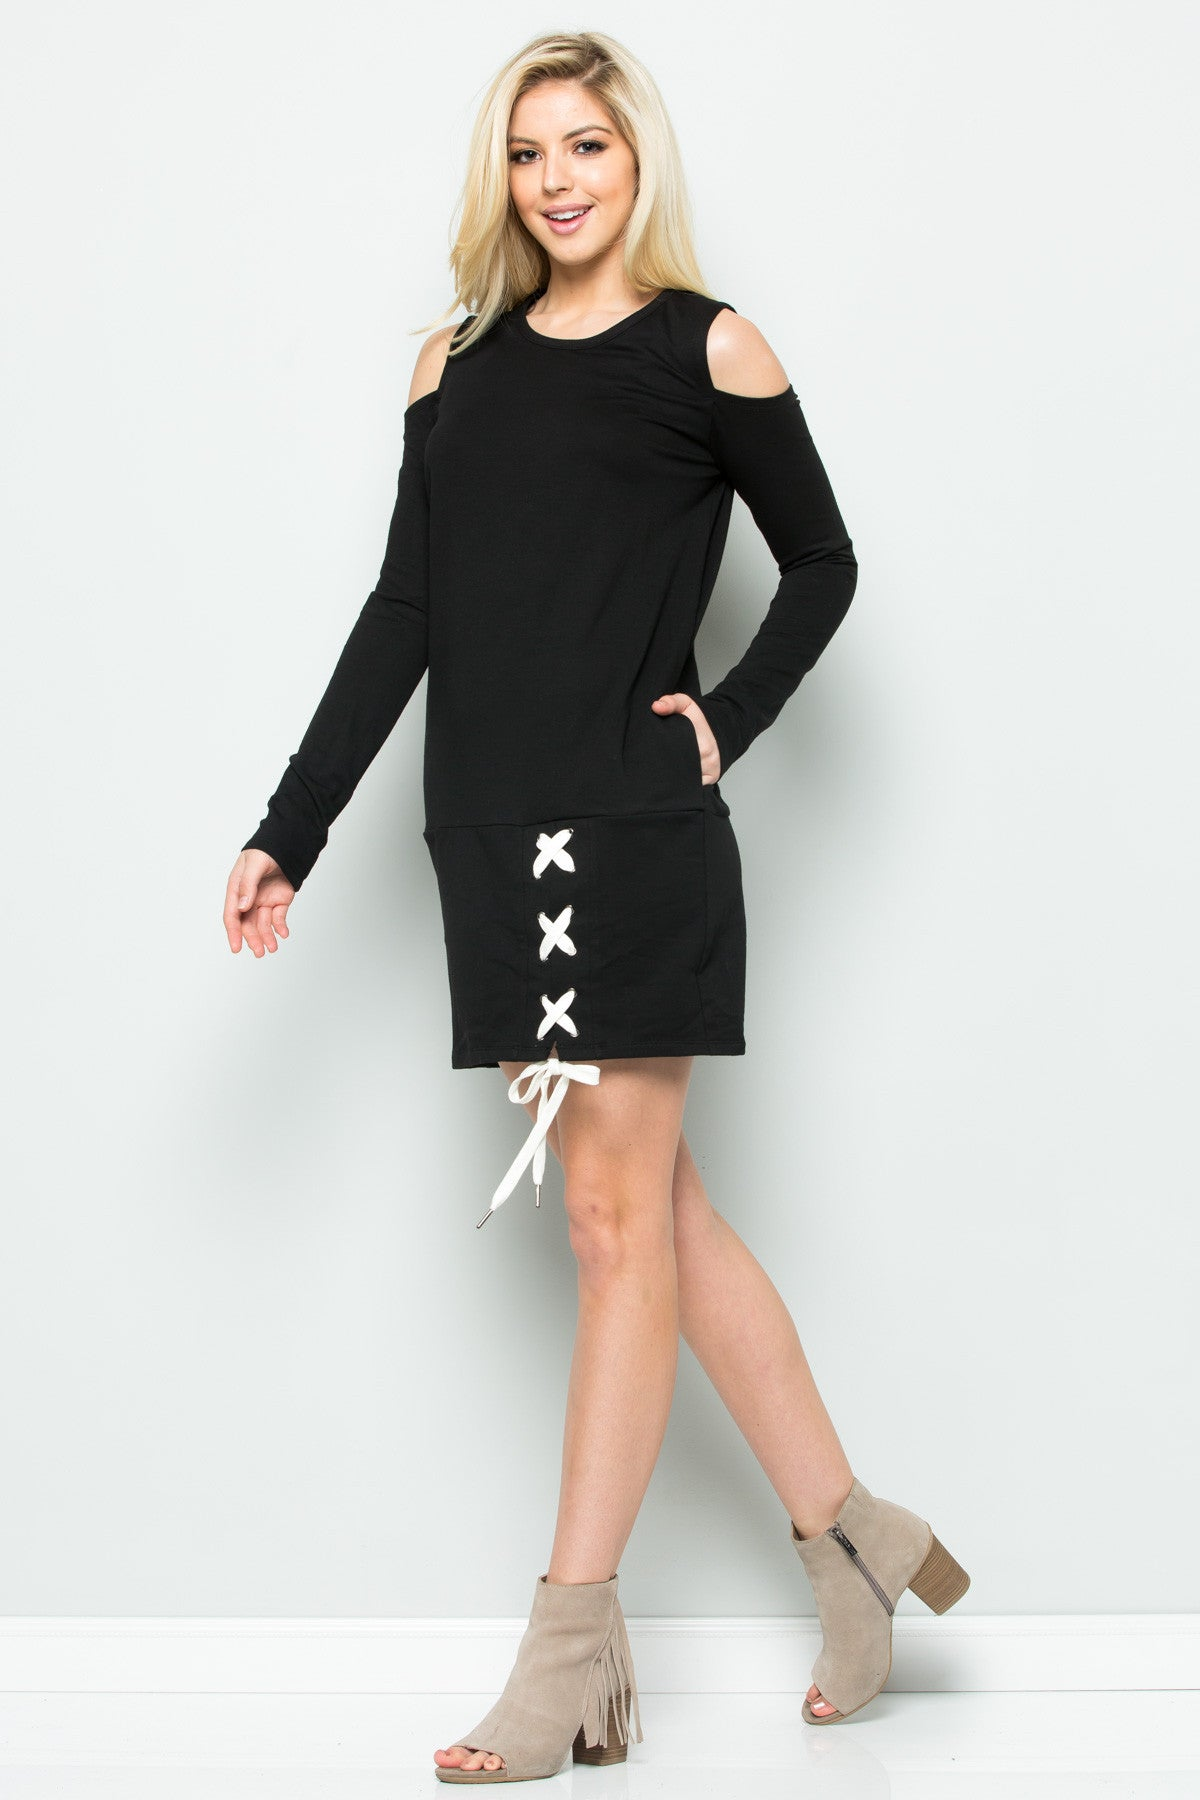 Cold Shoulder Lace Up Sweater Dress in Black - Dresses - My Yuccie - 5